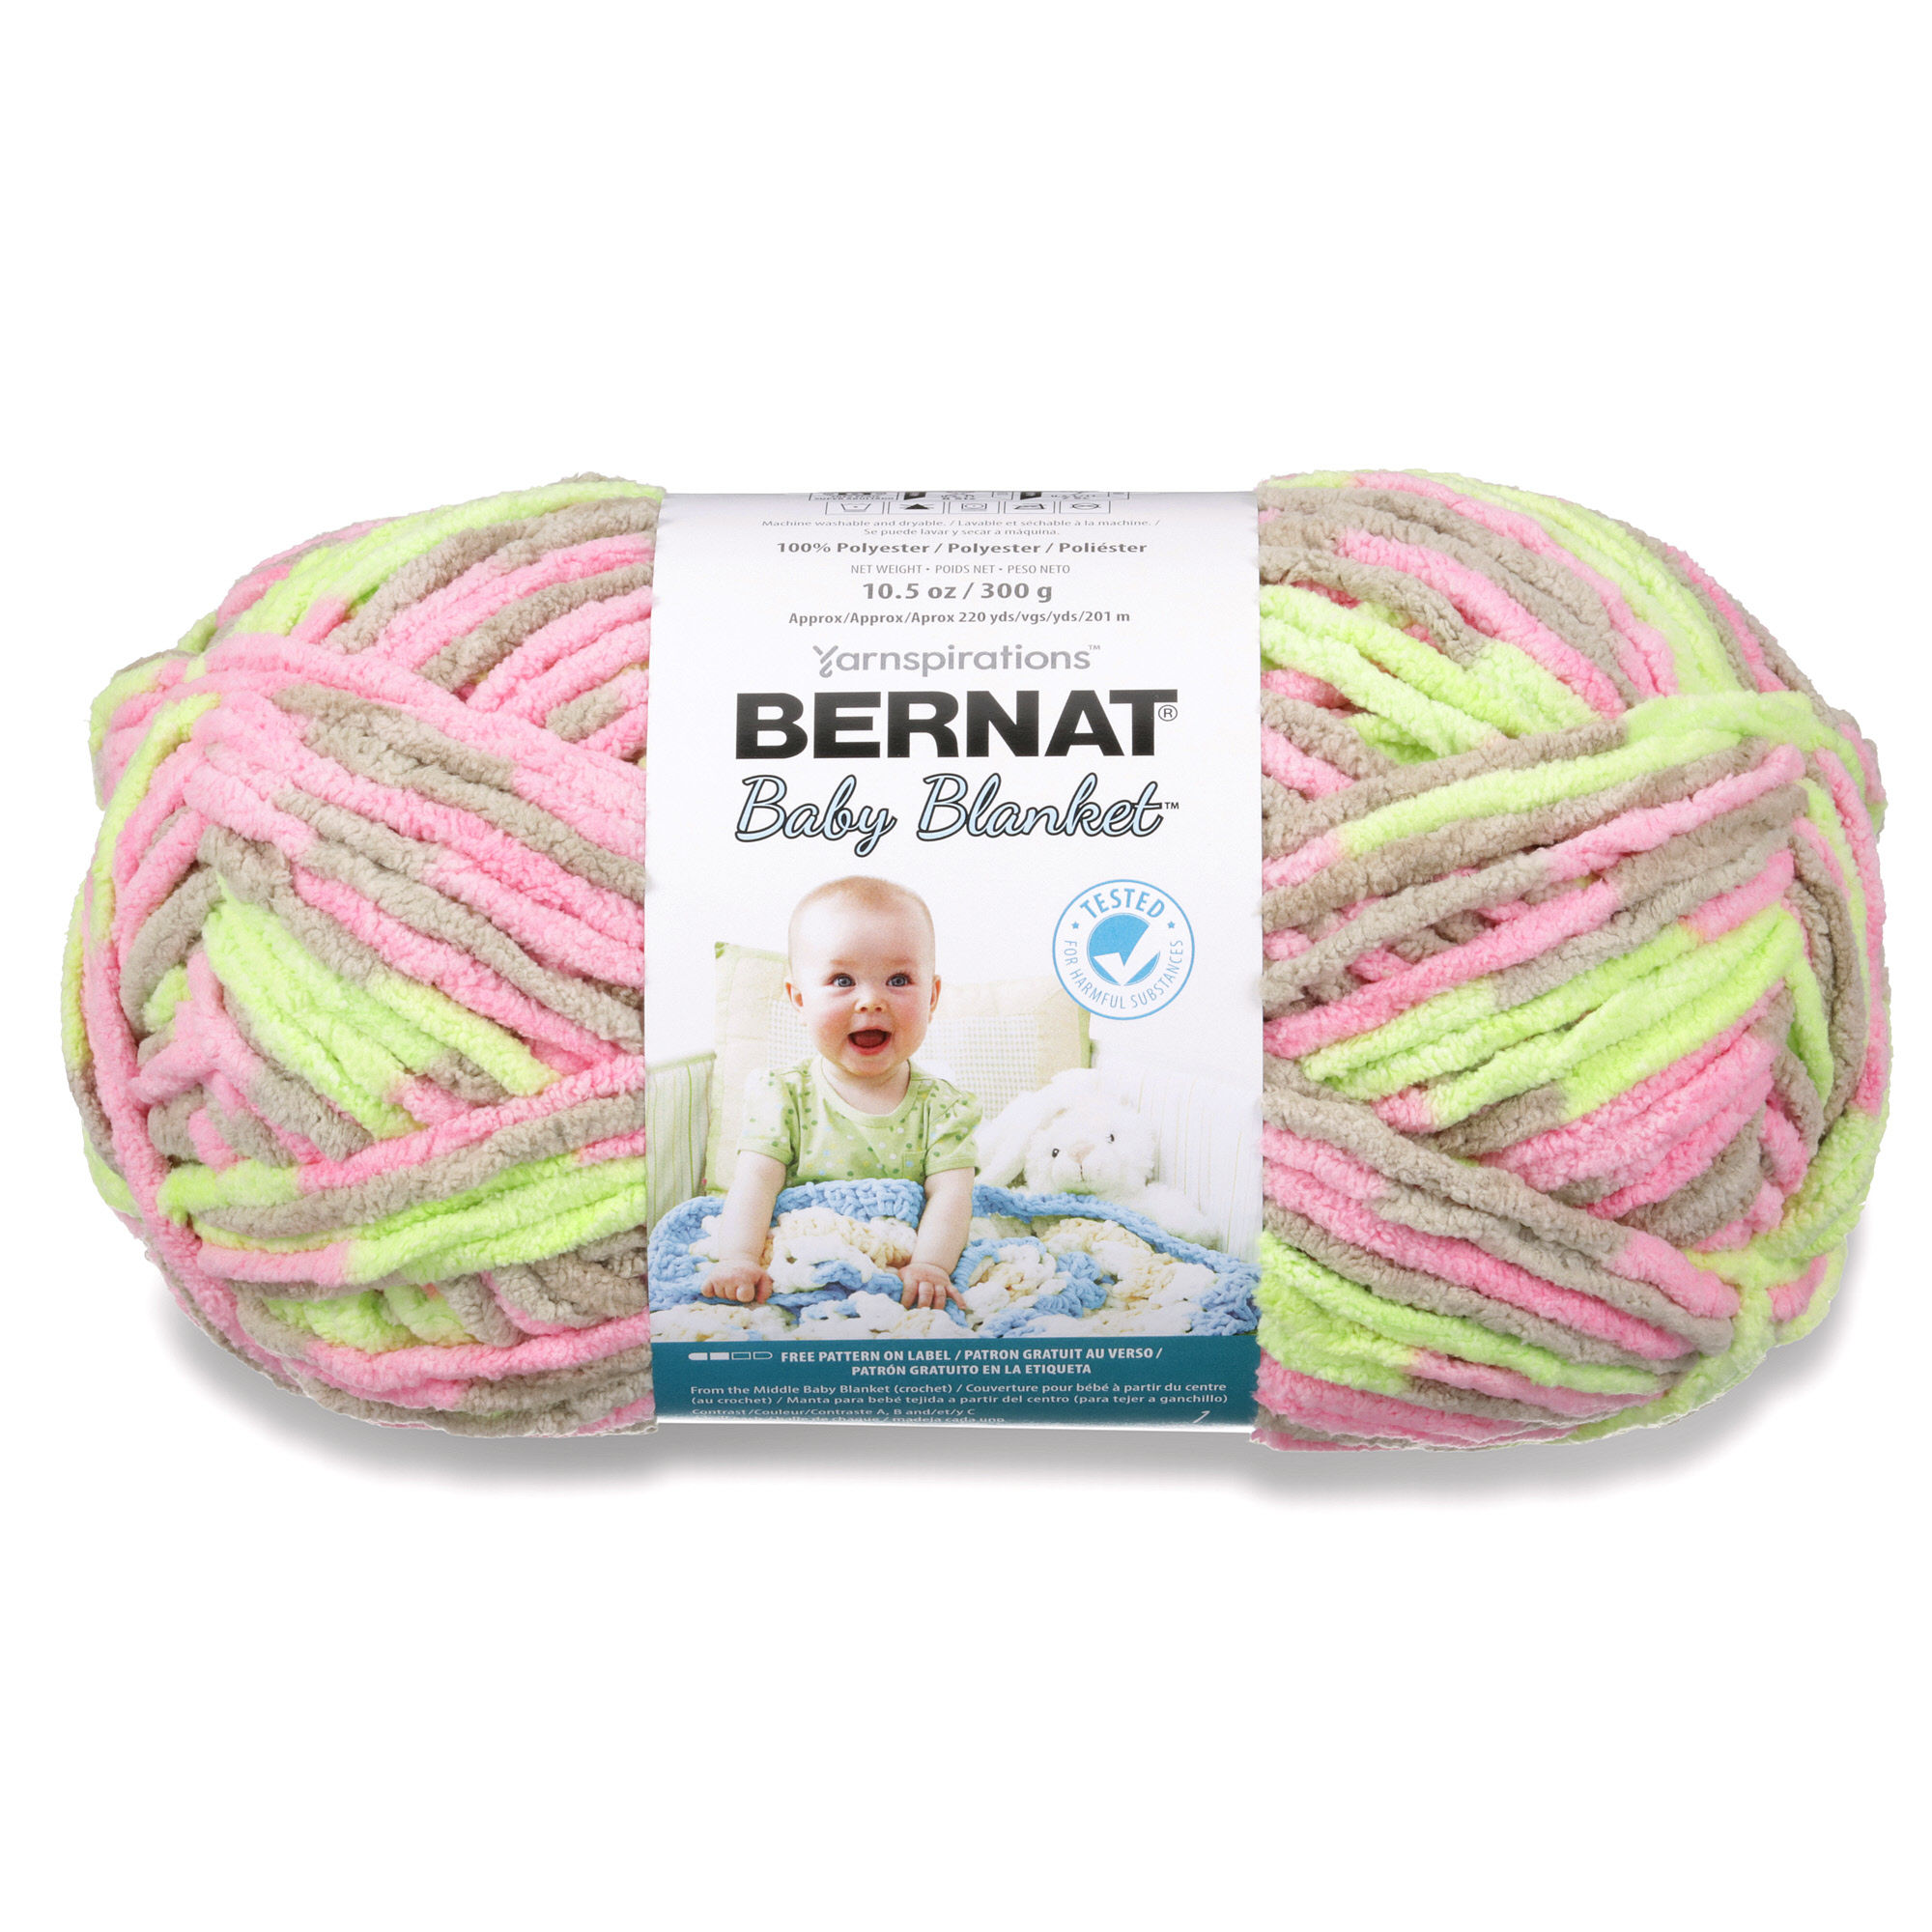 Bernat Baby Blanket Yarn, 300g, Little Boy Dove - Walmart.com